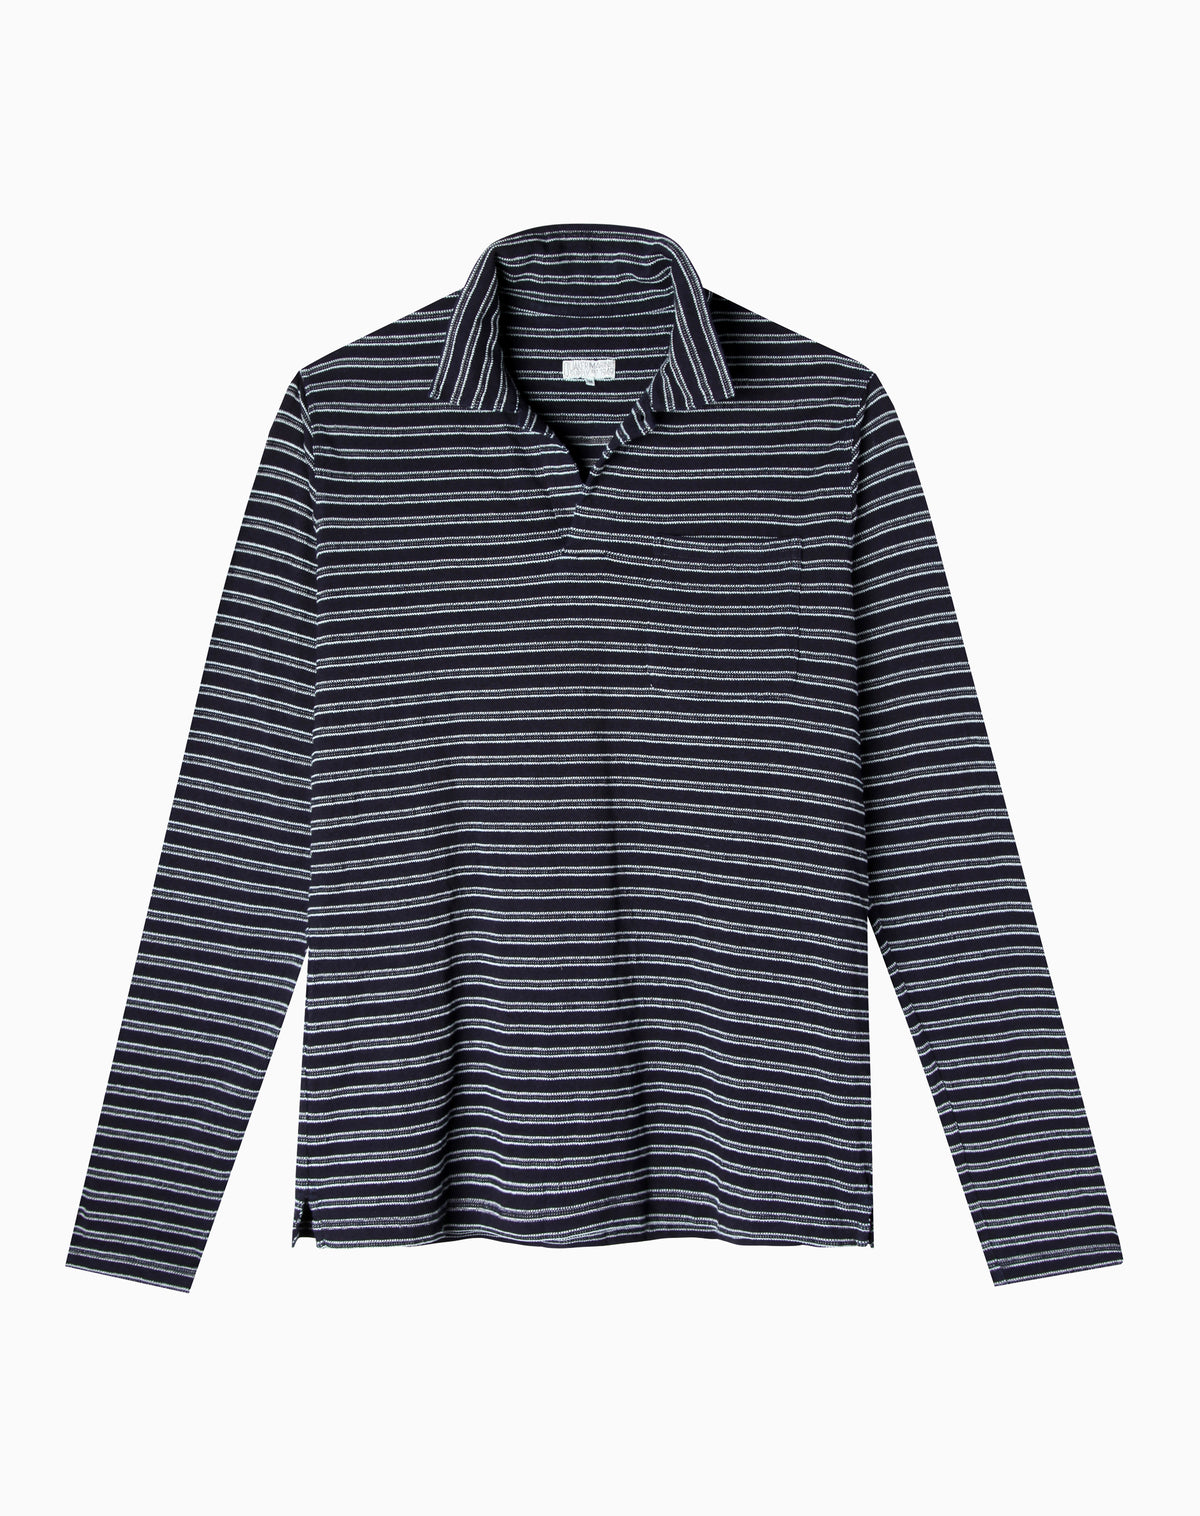 Long Sleeve Indigo Polo in Dark Wash Jacquard Stripe